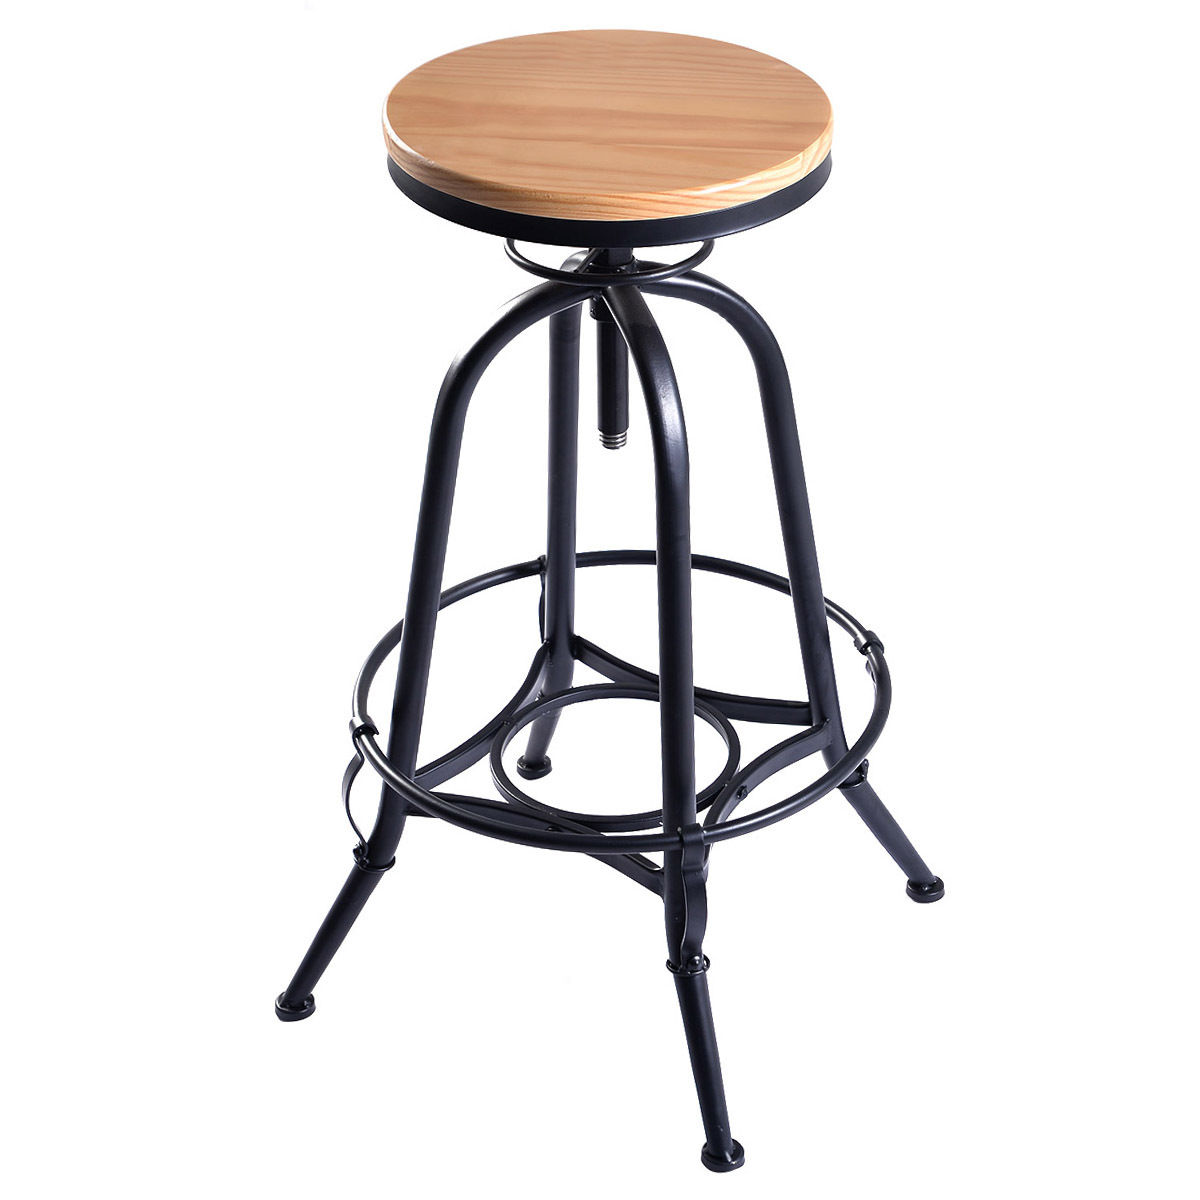 Awesome Adjustable Swivel Industrial Metal Design Vintage Bar Stool Table Barstools Chairs Furniture Adjustable Swivel Industrial Metal Design Vintage Bar Stool Table houzz-03 Wood Bar Stools